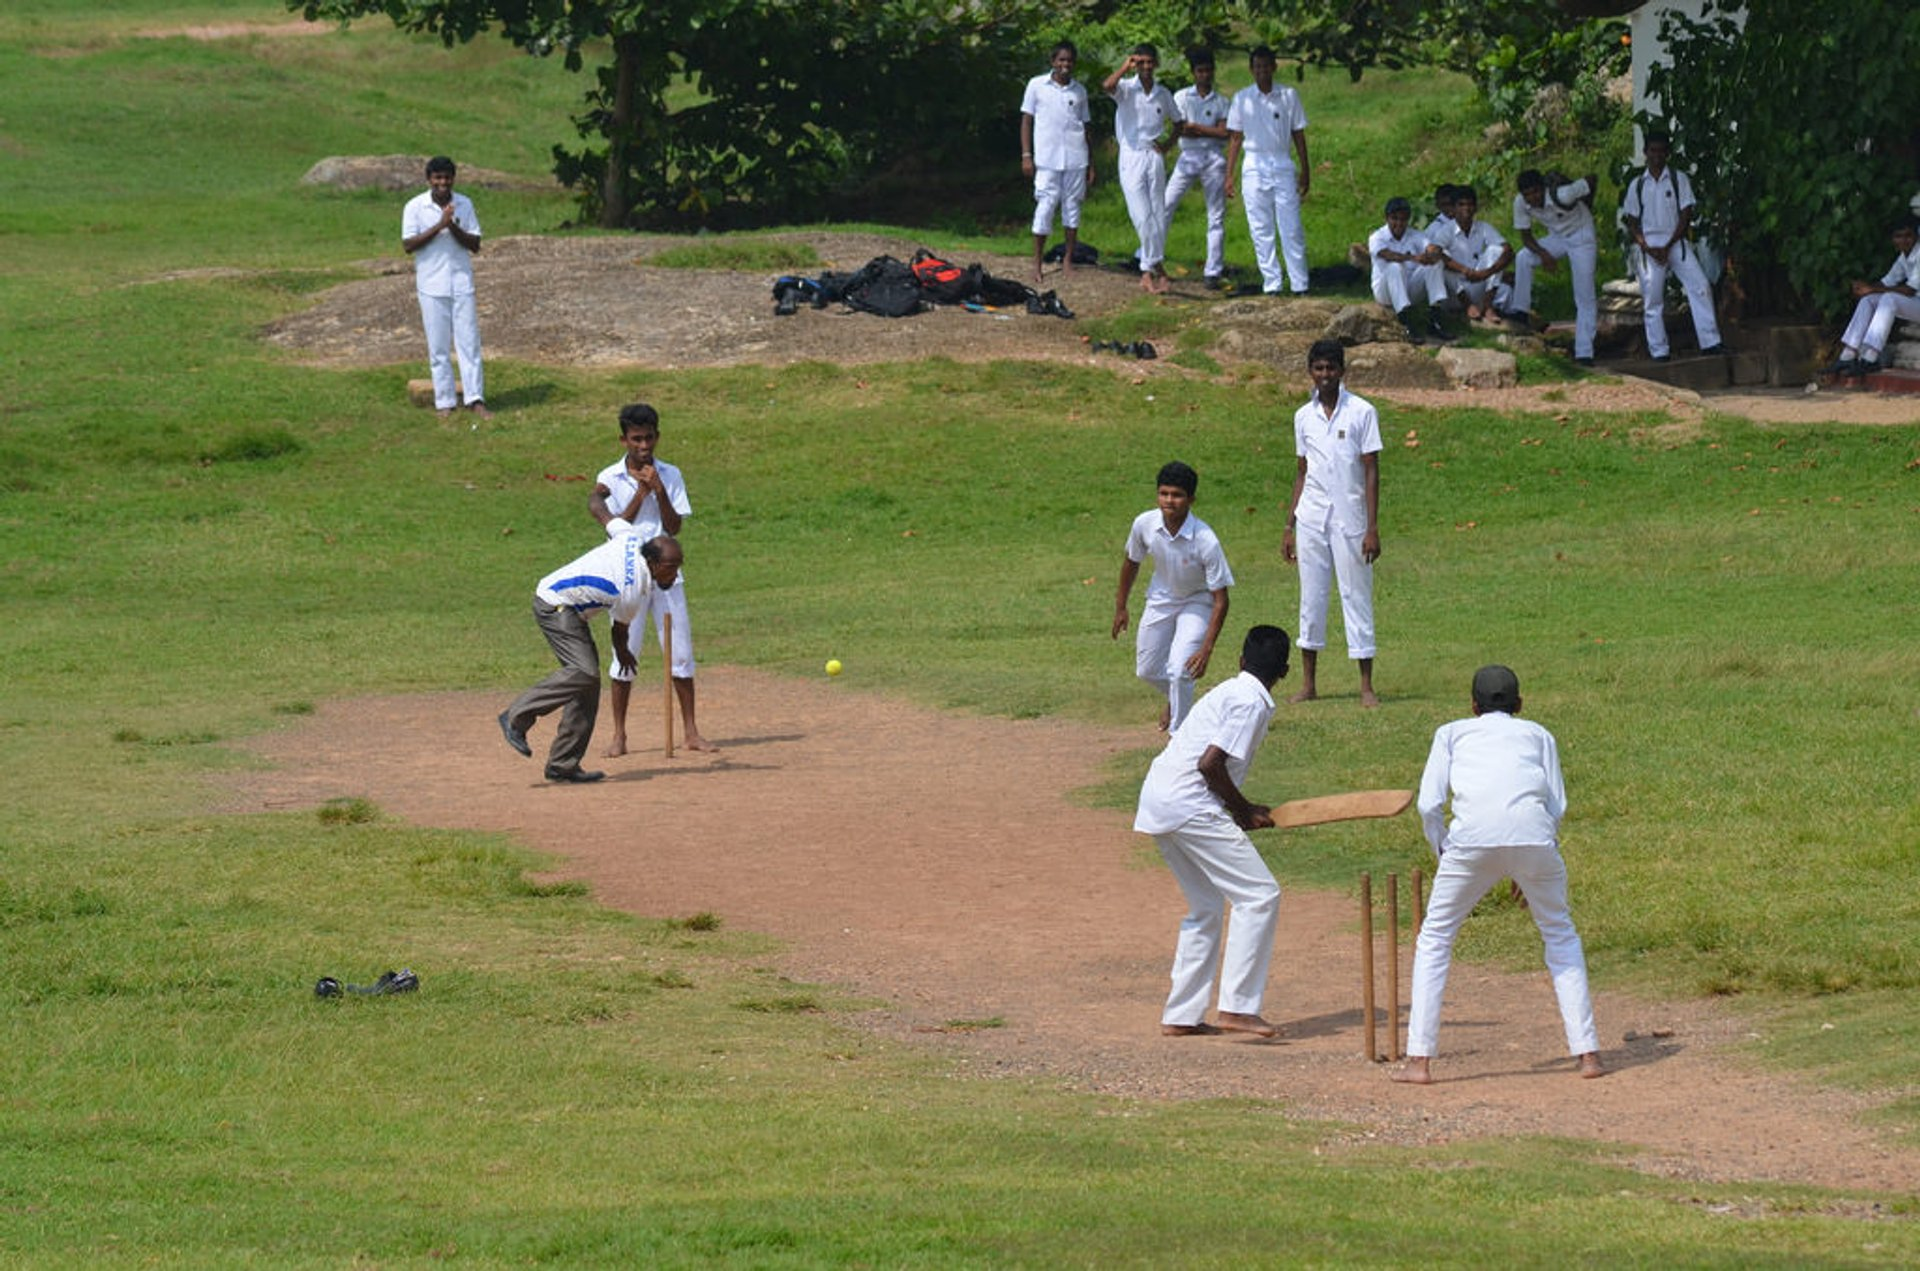 Cricket in Sri Lanka 2020 - Best Time